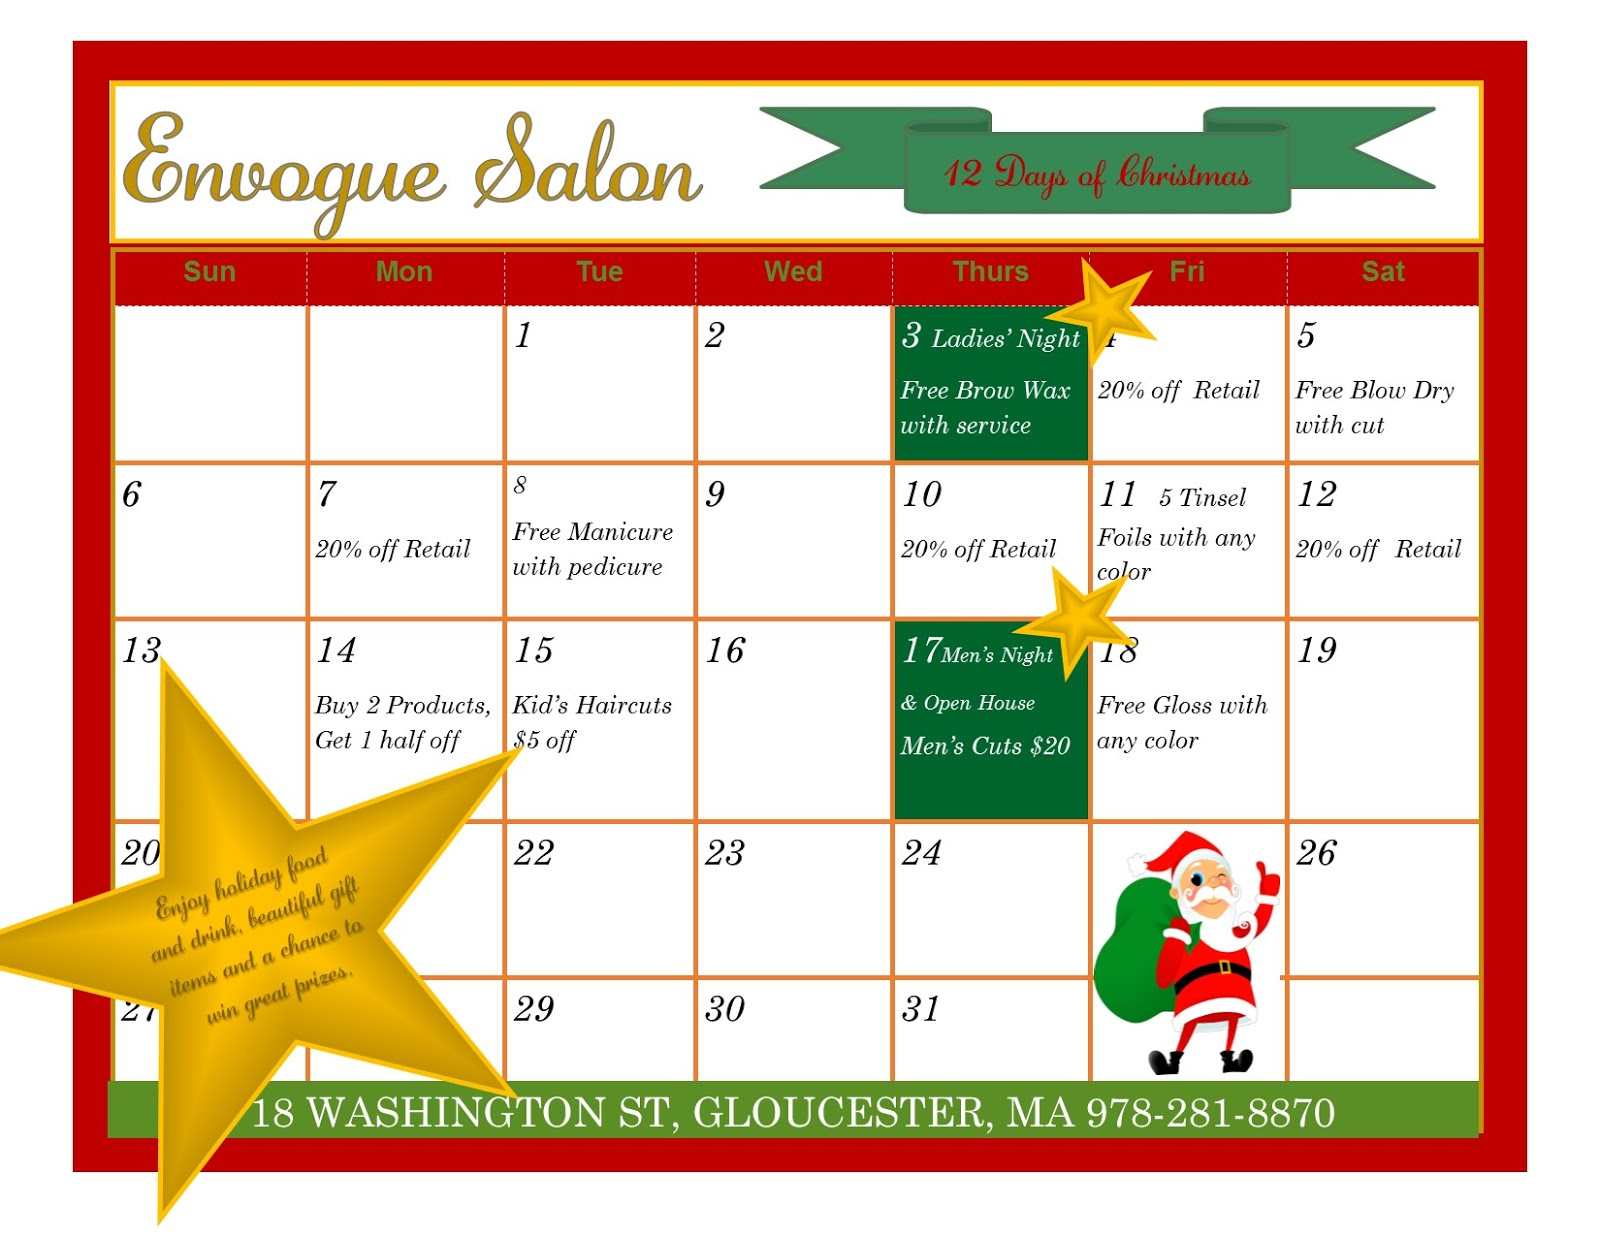 Envogue salon gloucester 2015 for 12 days of christmas salon specials